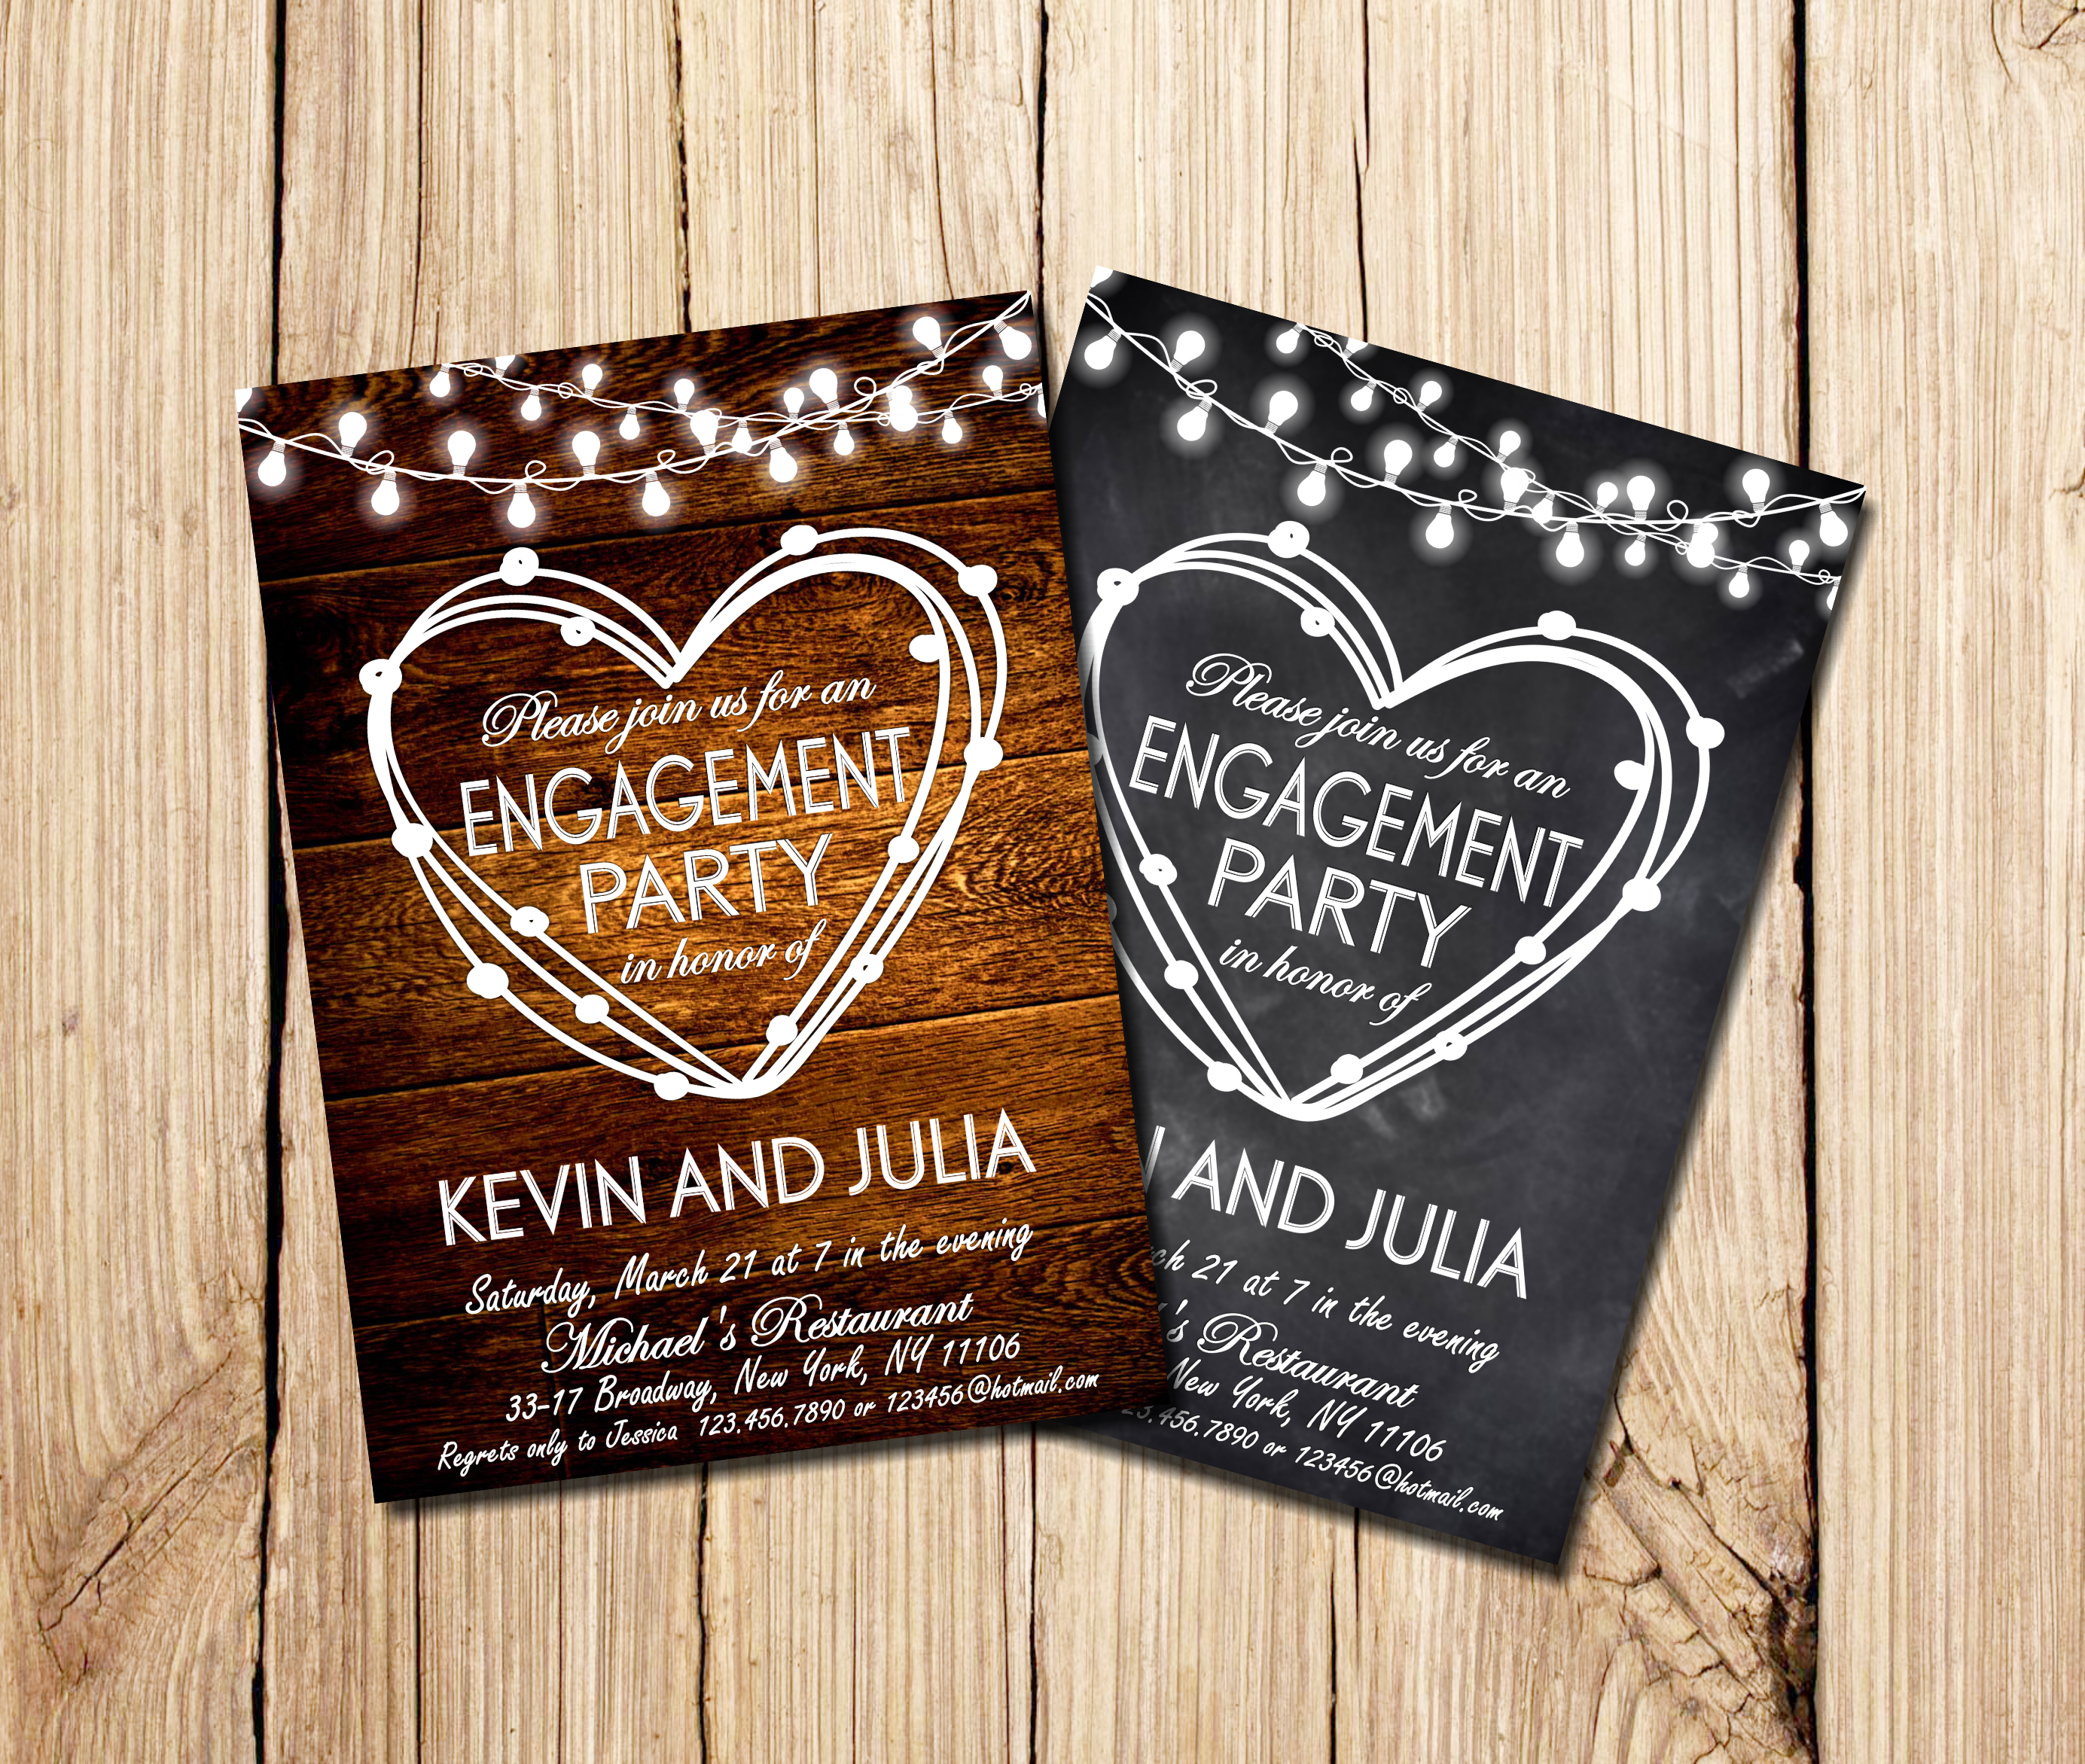 Rustic Engagement Invitation, Engagement Party Invitation, Engagement Party